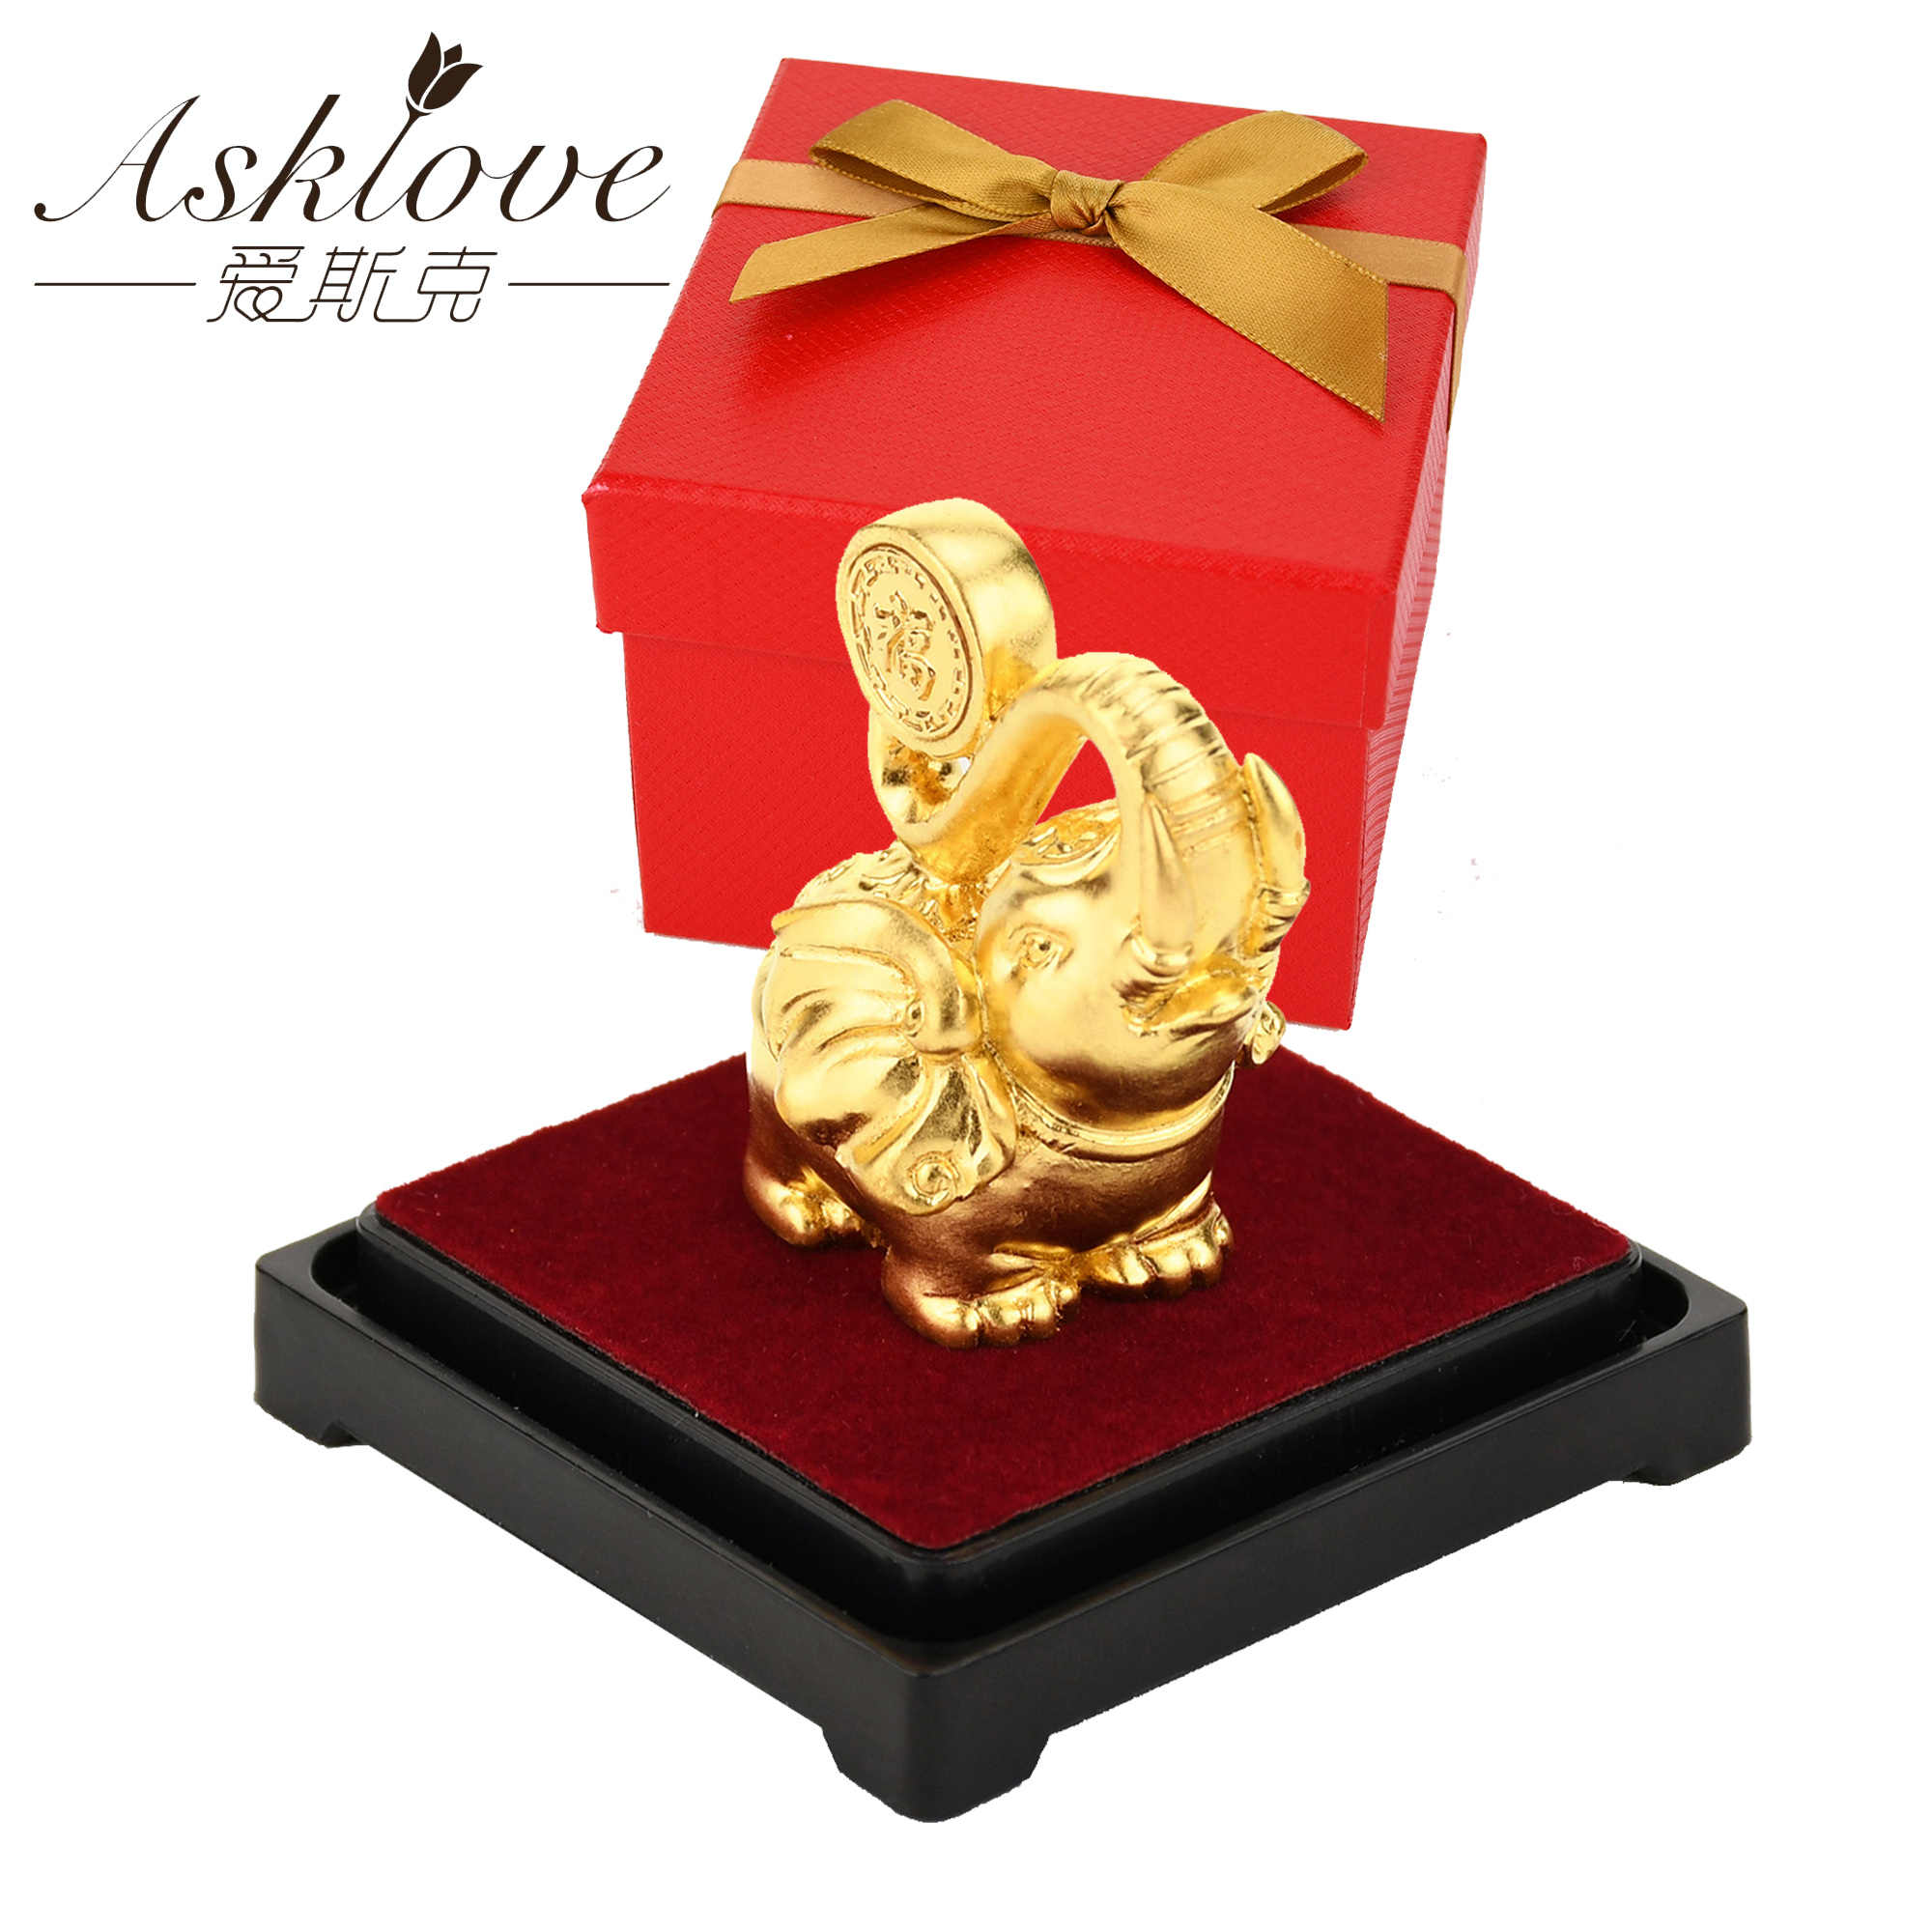 Lucky Olifant Feng Shui Decor 24K Goud Folie Olifant Standbeeld Figurine Kantoor Ornament Ambachten Verzamelen Rijkdom Home Office Decor